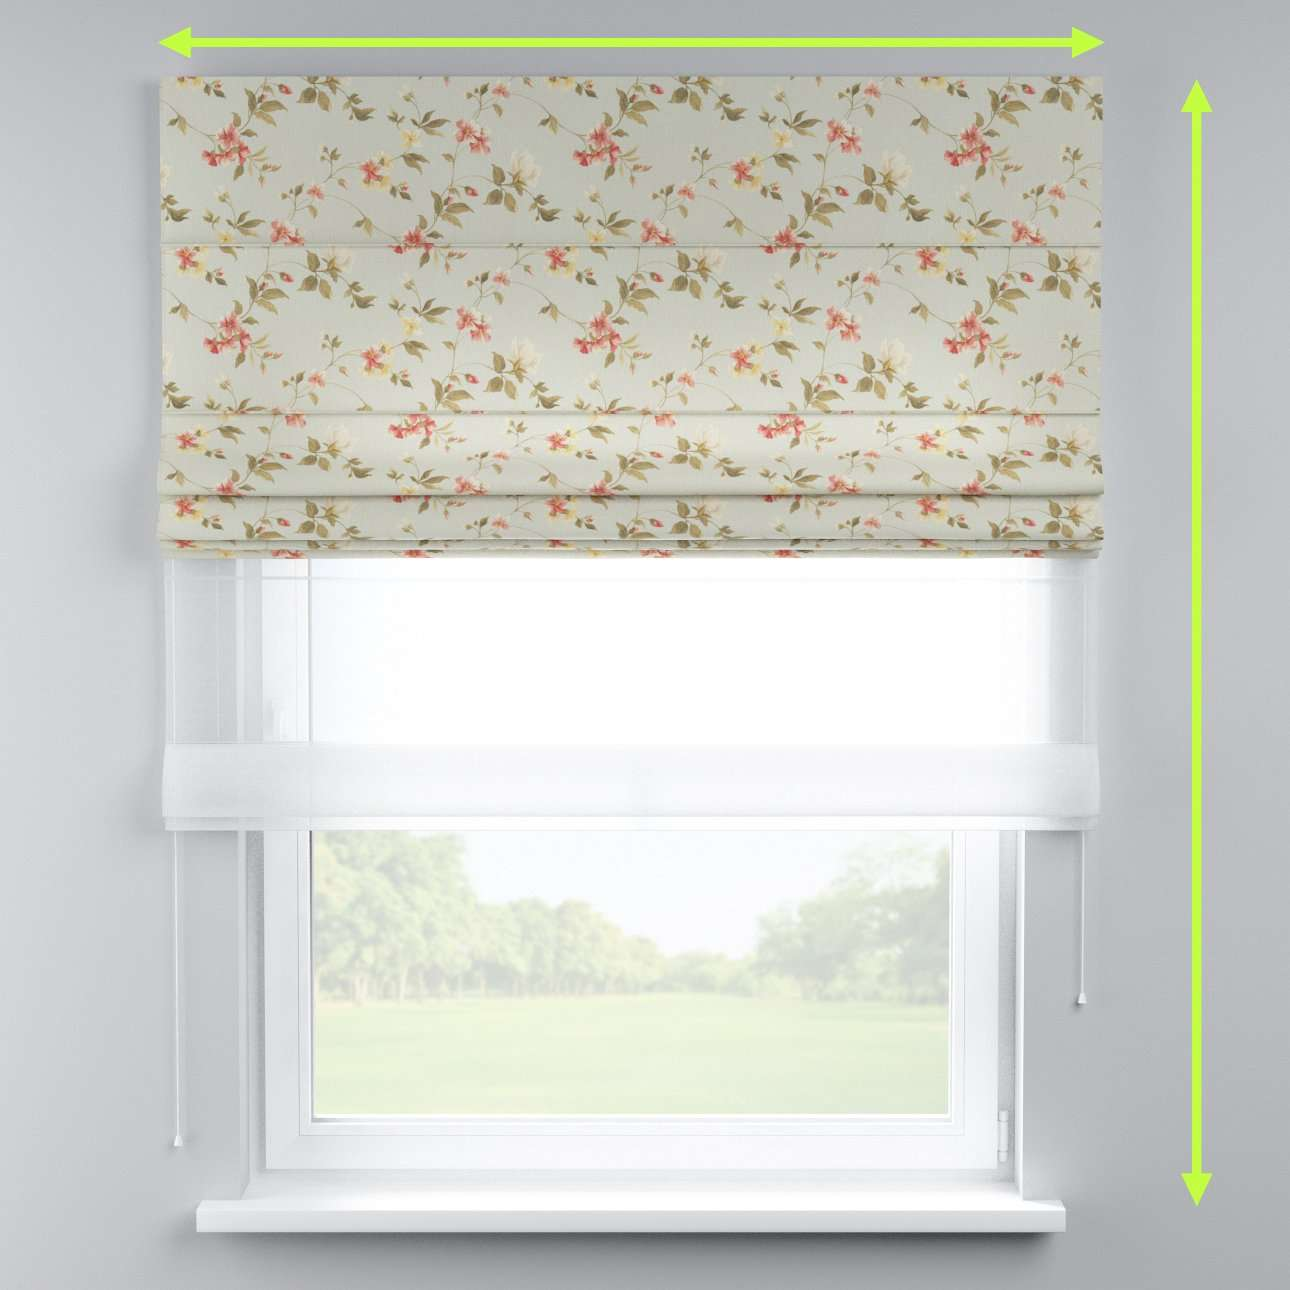 Voile and fabric roman blind (DUO II) in collection Londres, fabric: 124-65